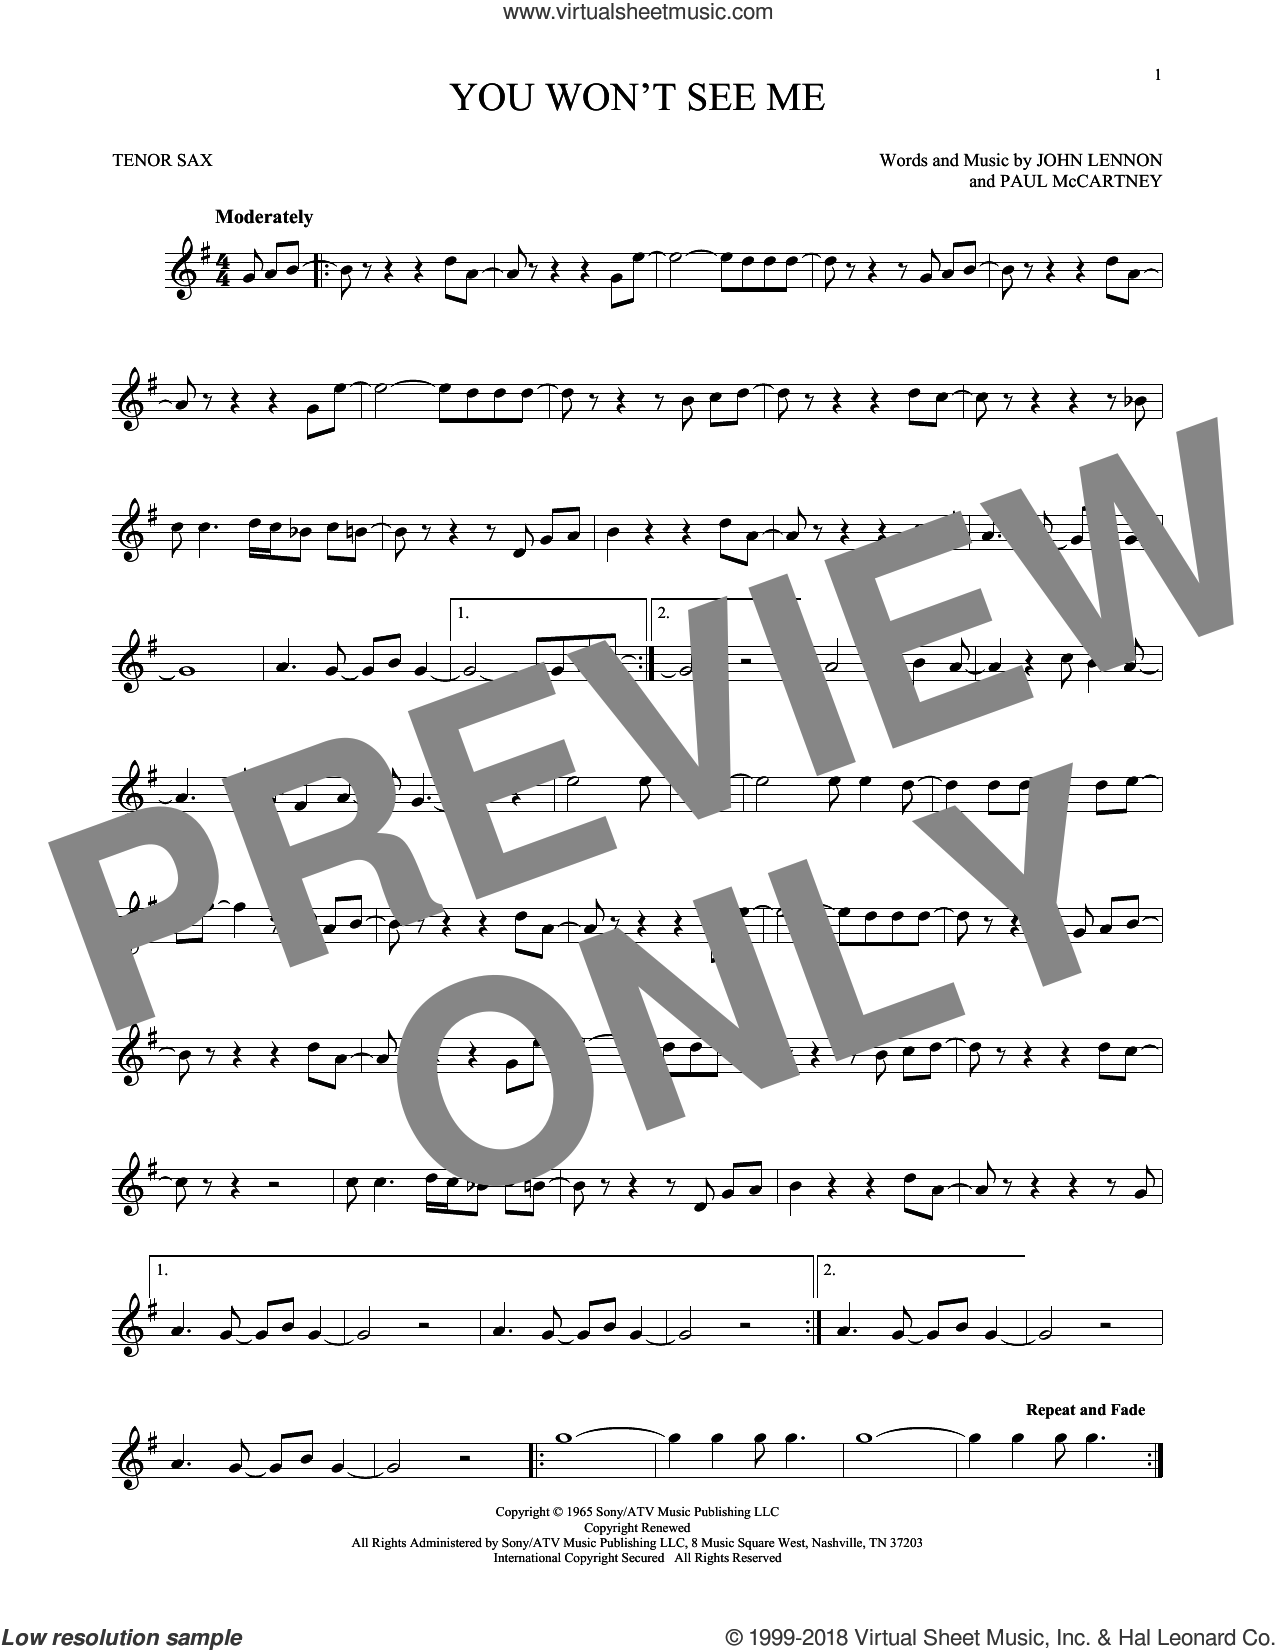 You Won't See Me sheet music for tenor saxophone solo by The Beatles, John Lennon and Paul McCartney, intermediate skill level